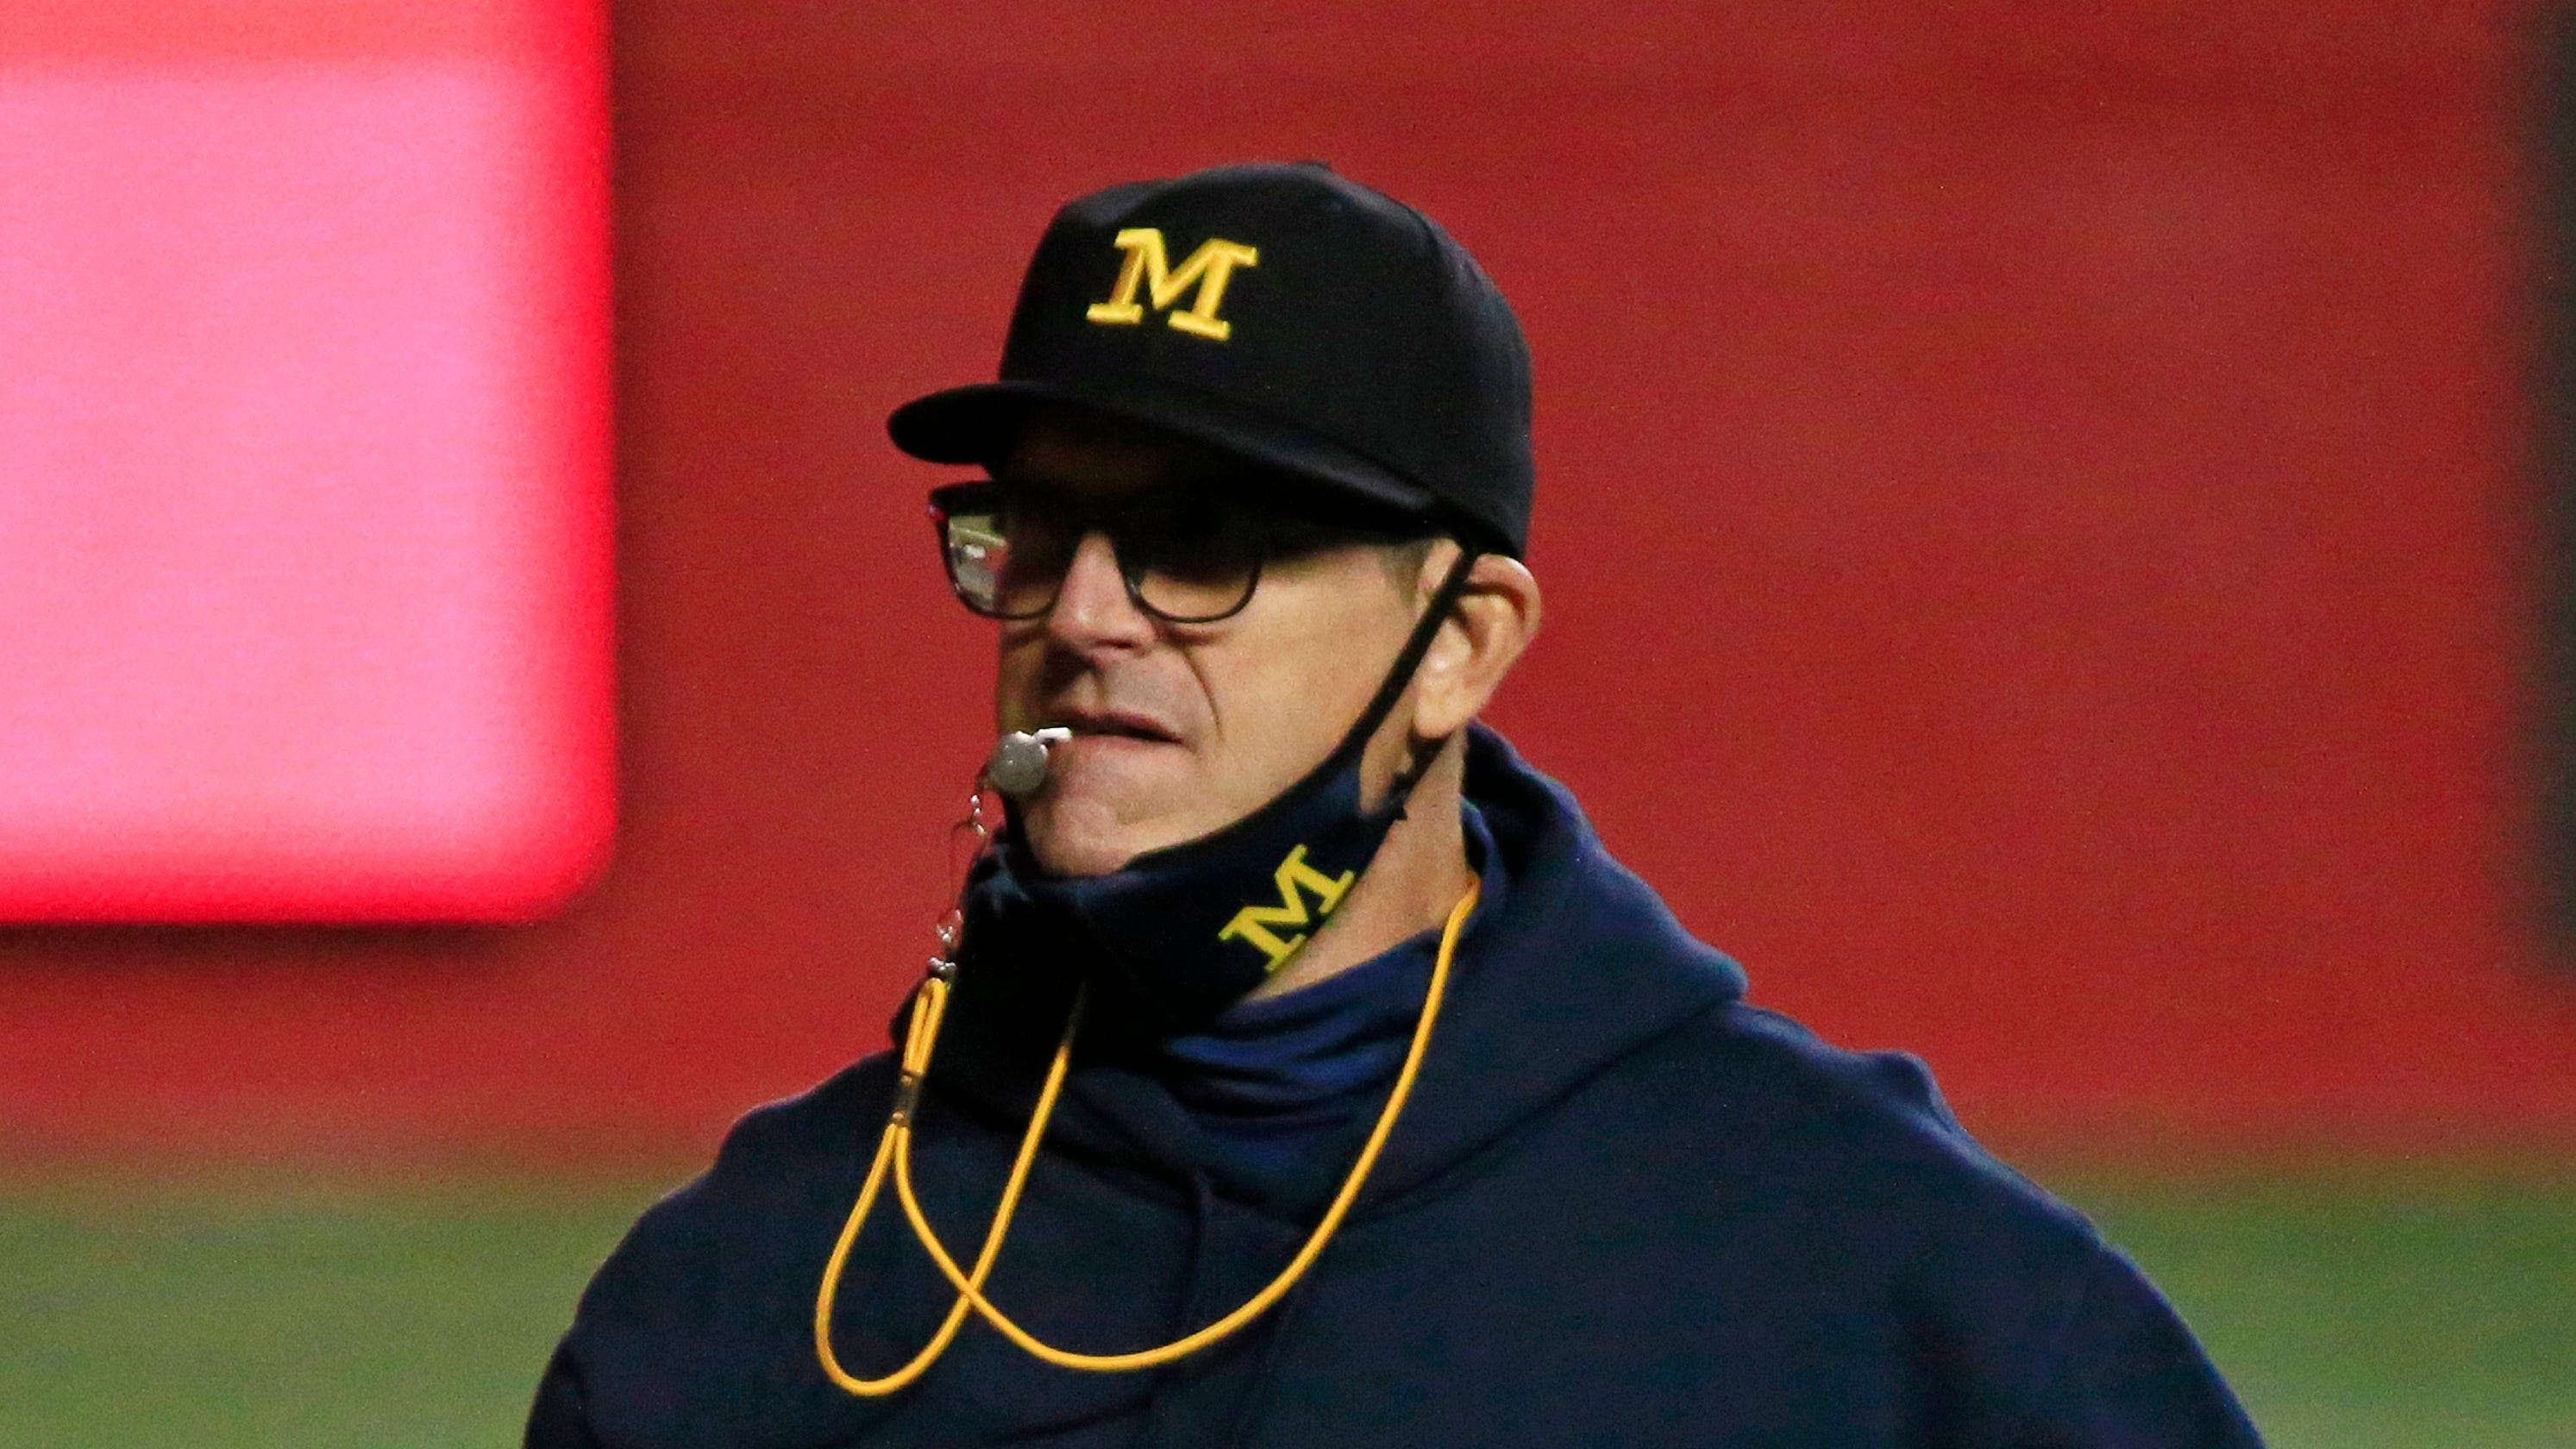 Opinion: Jim Harbaugh's comments after close win vs. Rutgers shows how far Michigan football has fallen